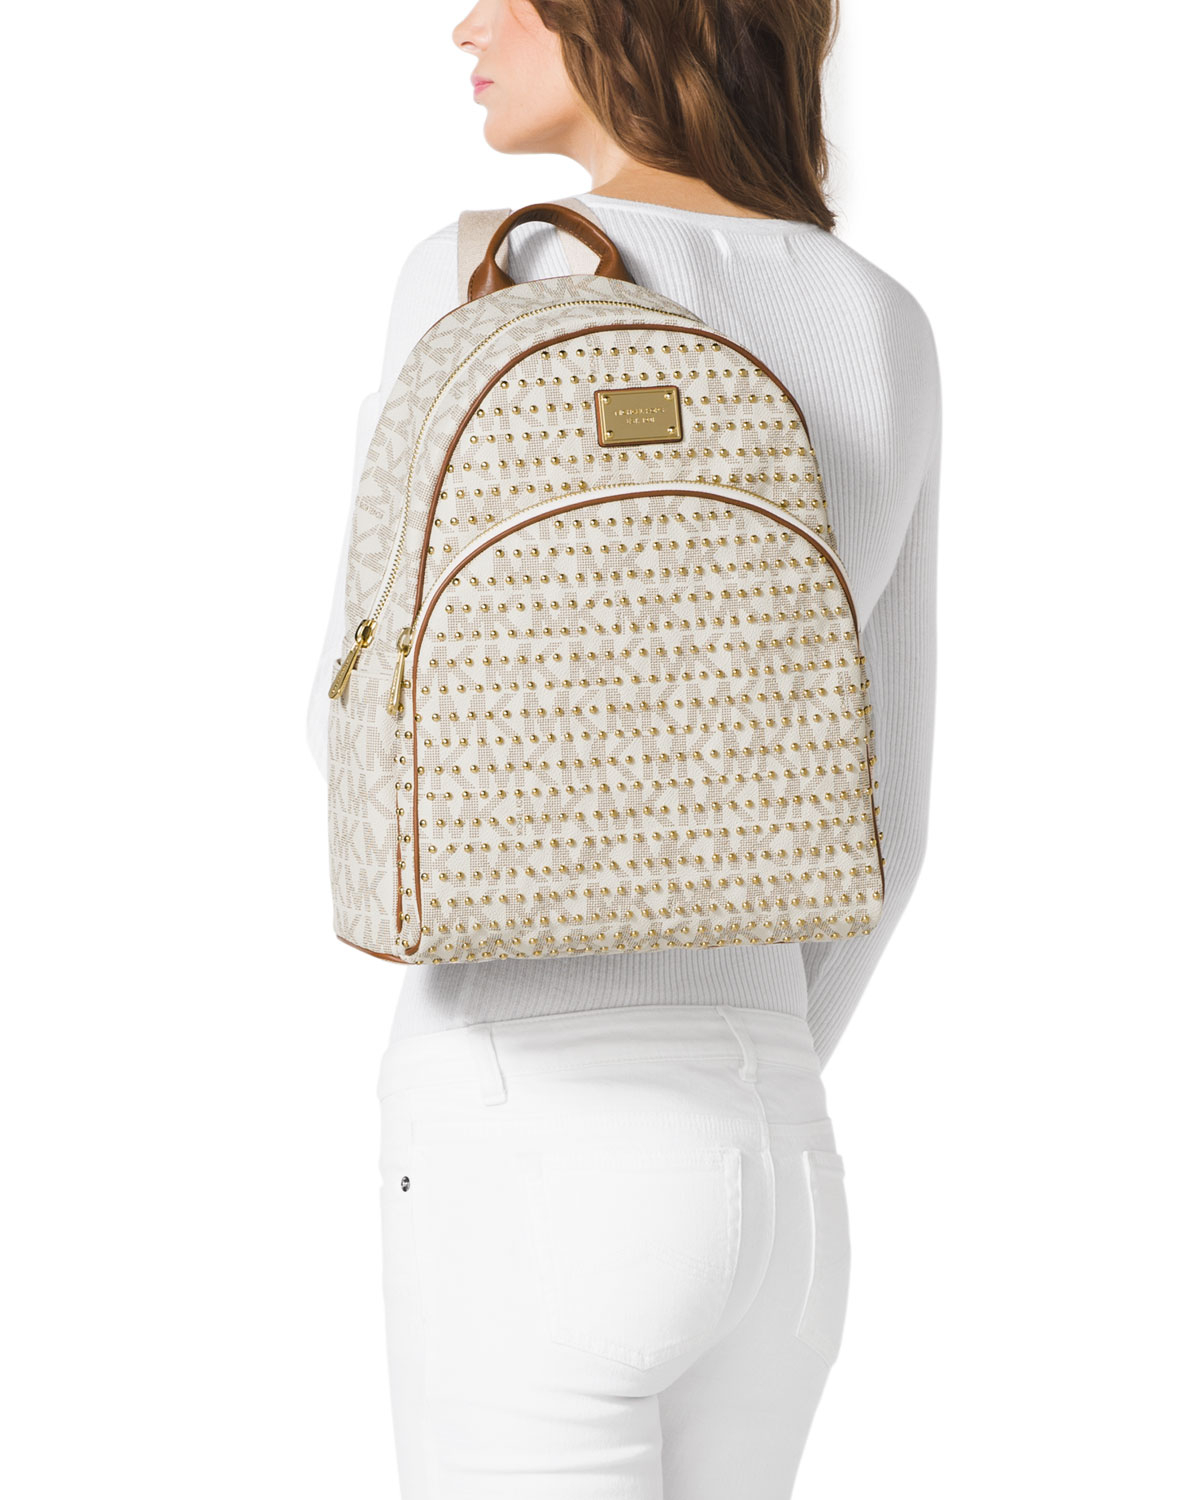 Lyst - MICHAEL Michael Kors Large Jet Set Studded Backpack in White 9988046c142c3